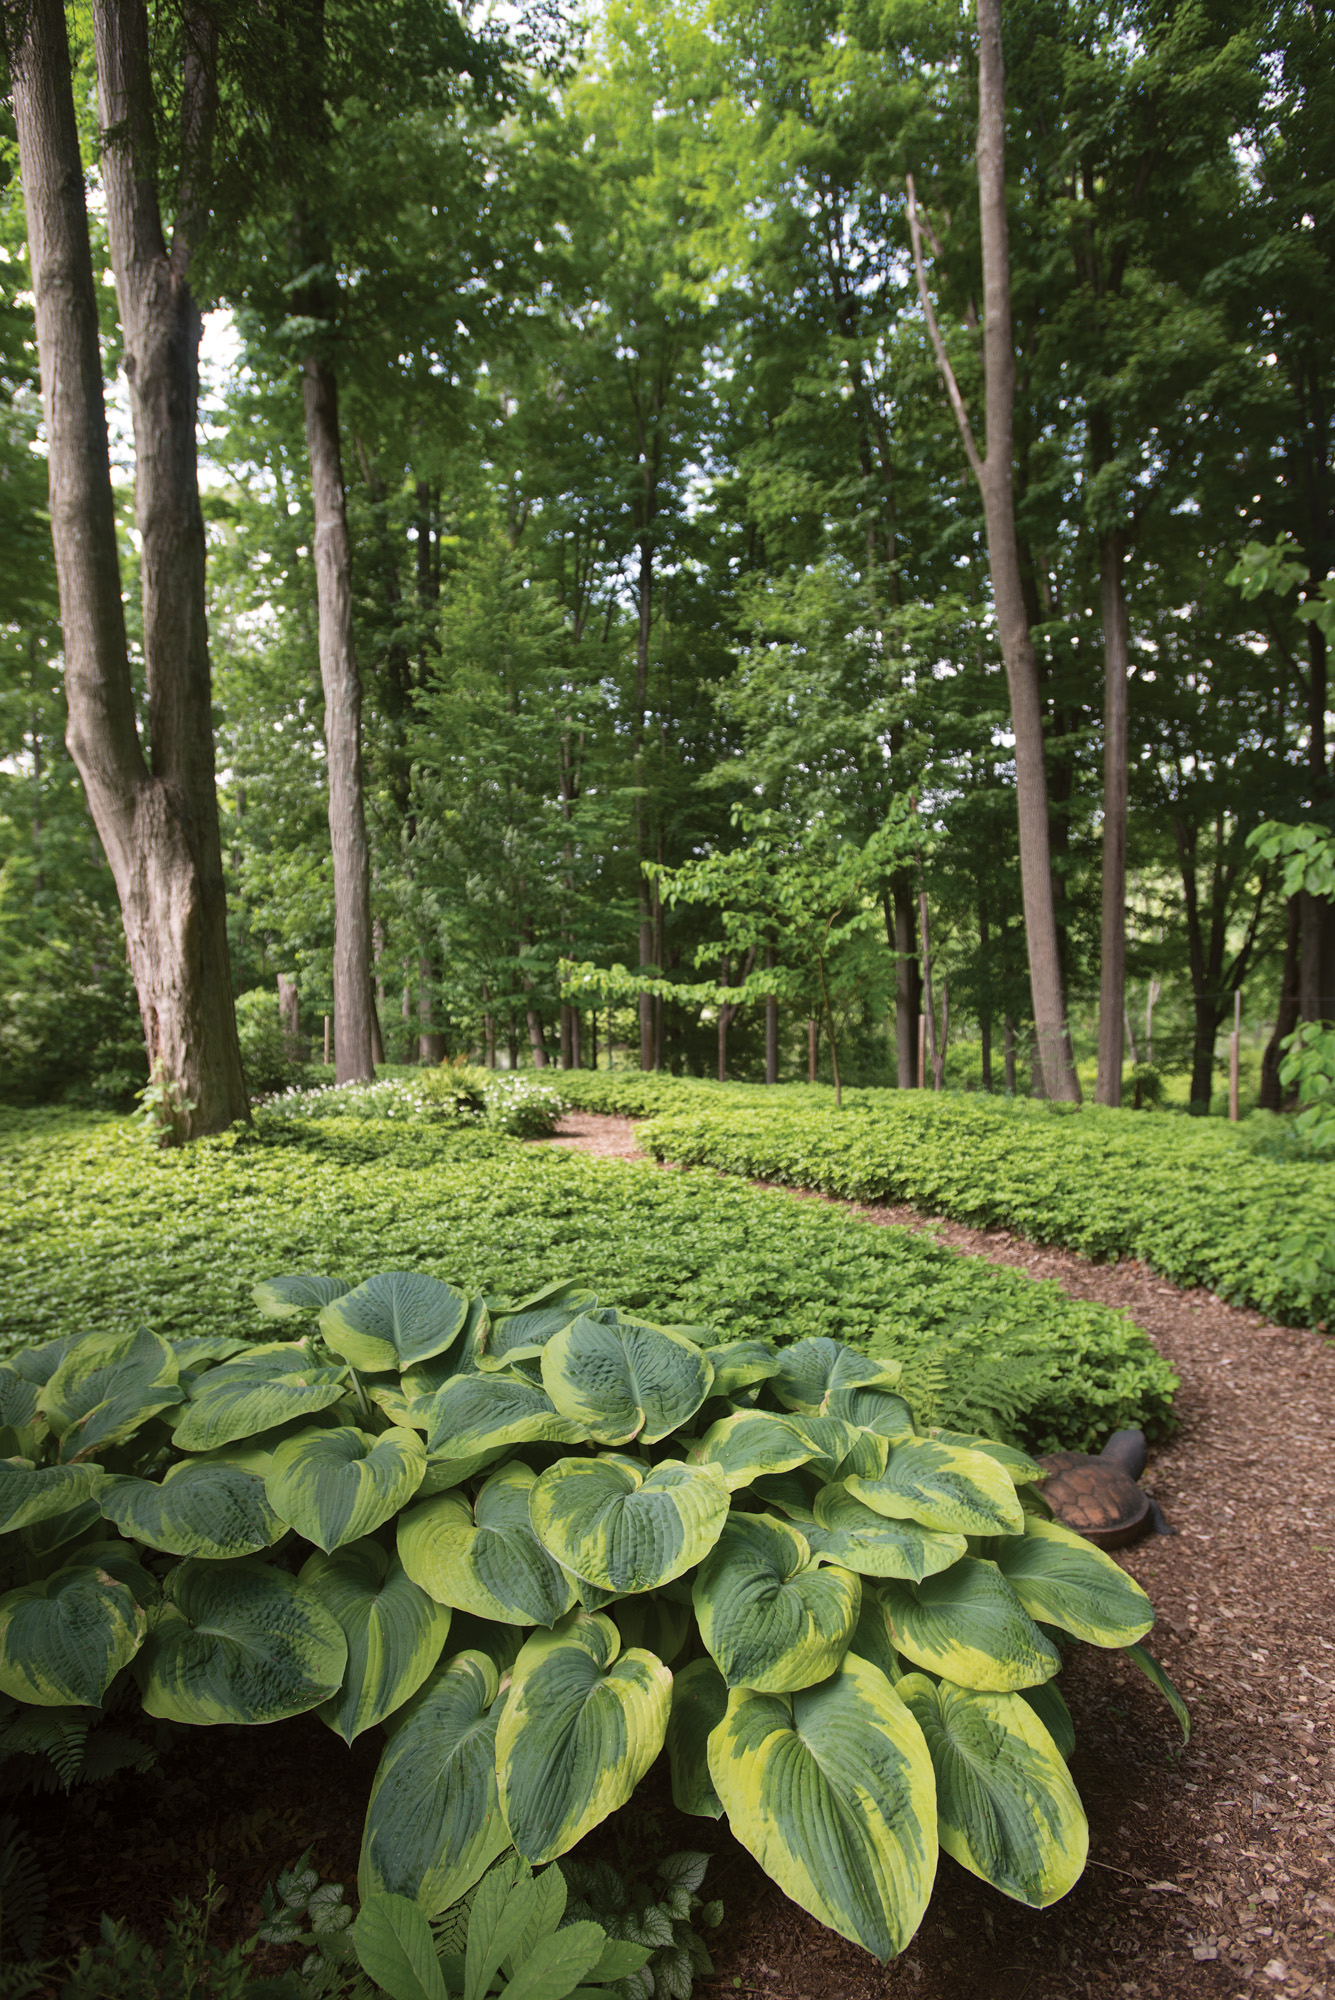 Cutting through an ocean of pachysandra, one path to the woodland has a 19th-century Pennsylvania redware turtle crawling at the periphery.